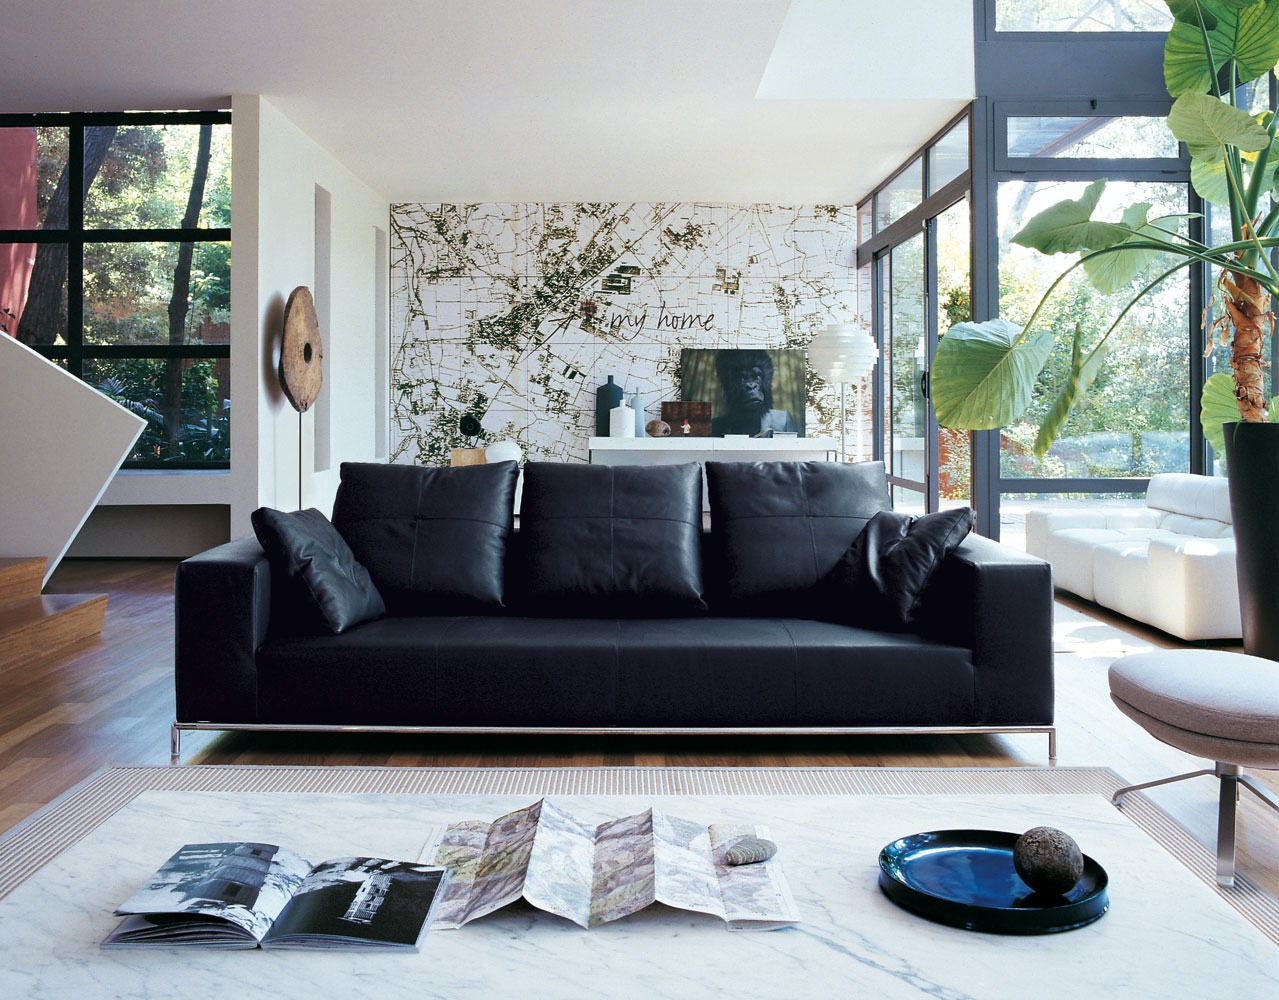 Black leather sofa interior design ideas for Living room ideas with black leather sofa